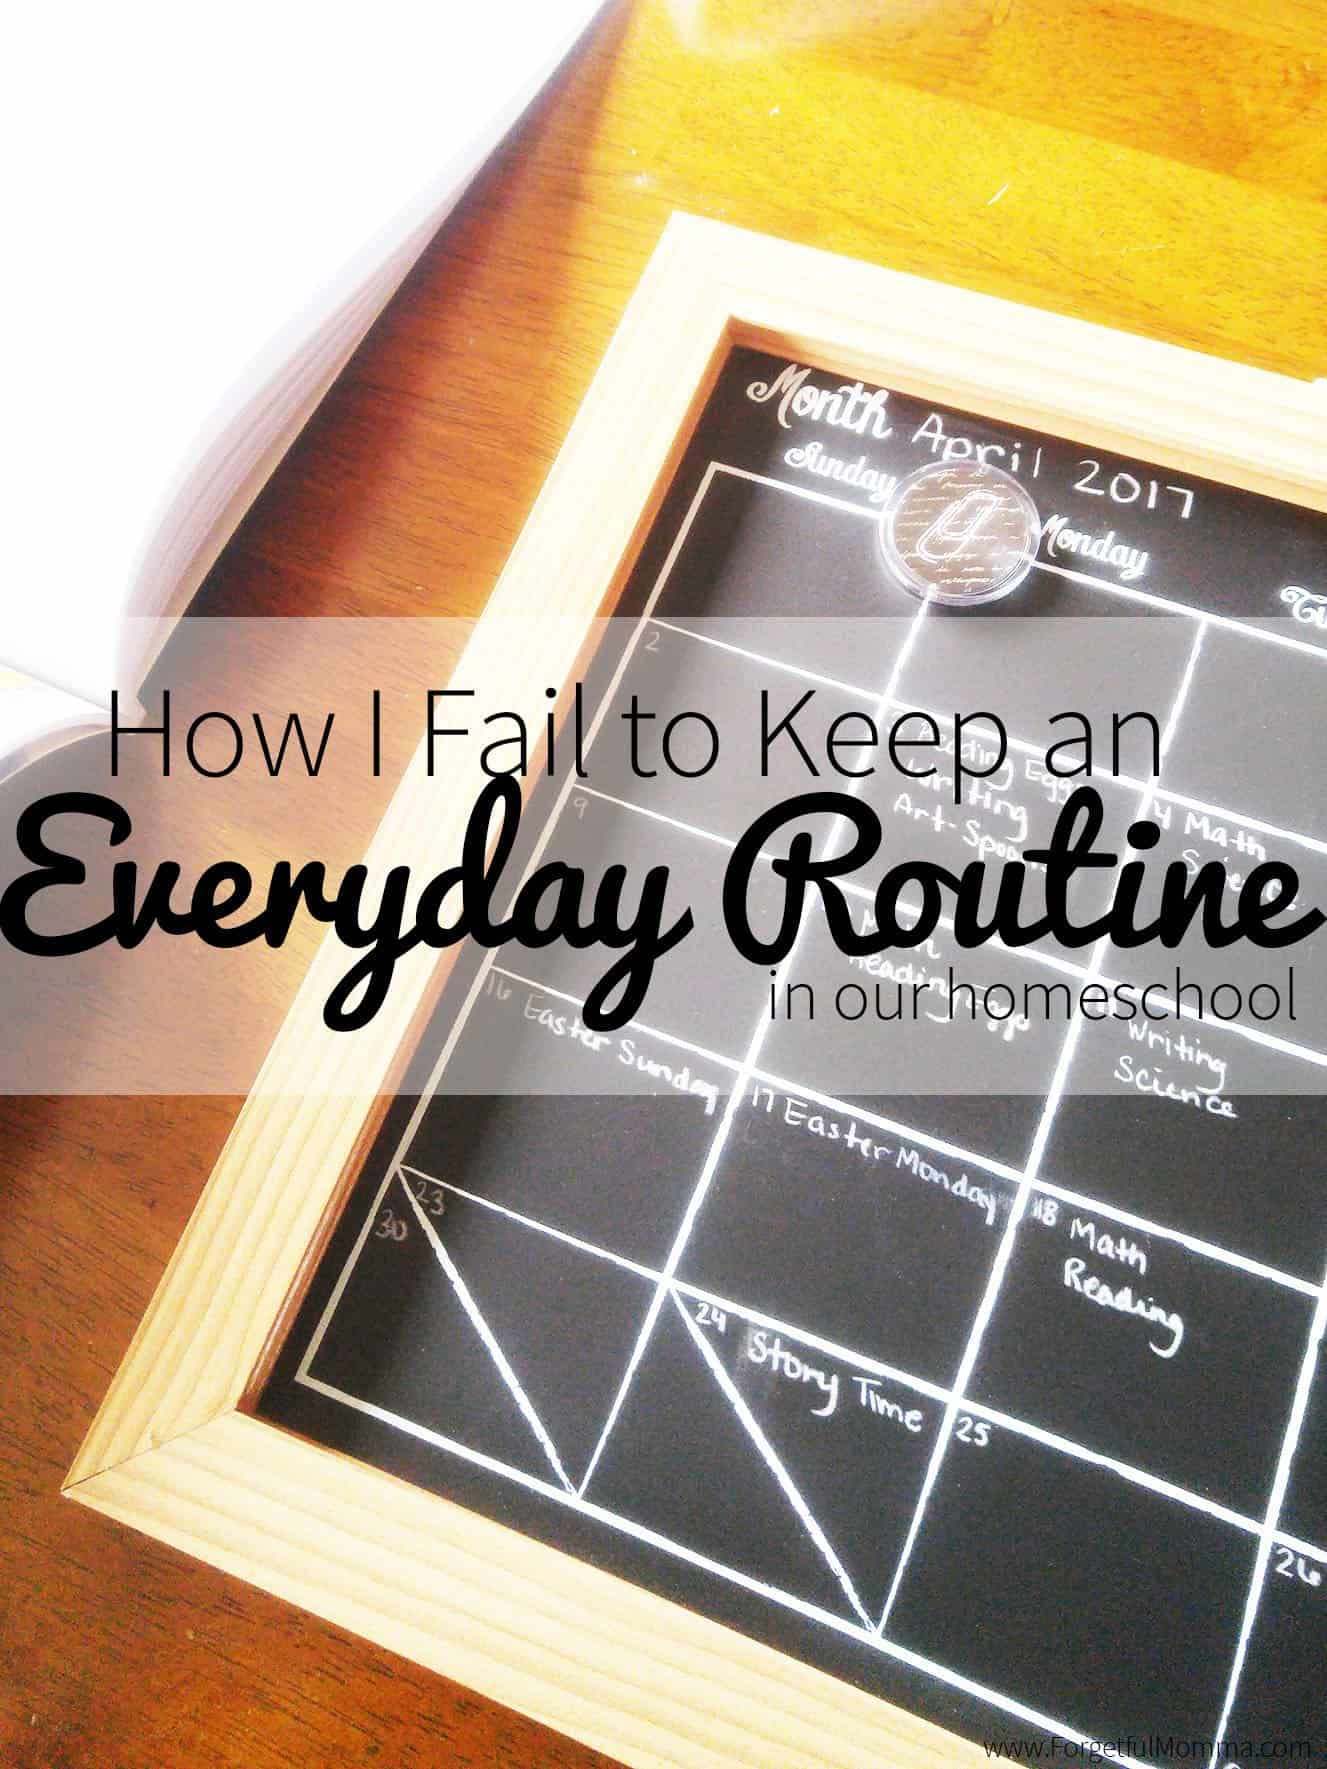 How I Fail to Keep an Everyday Routine